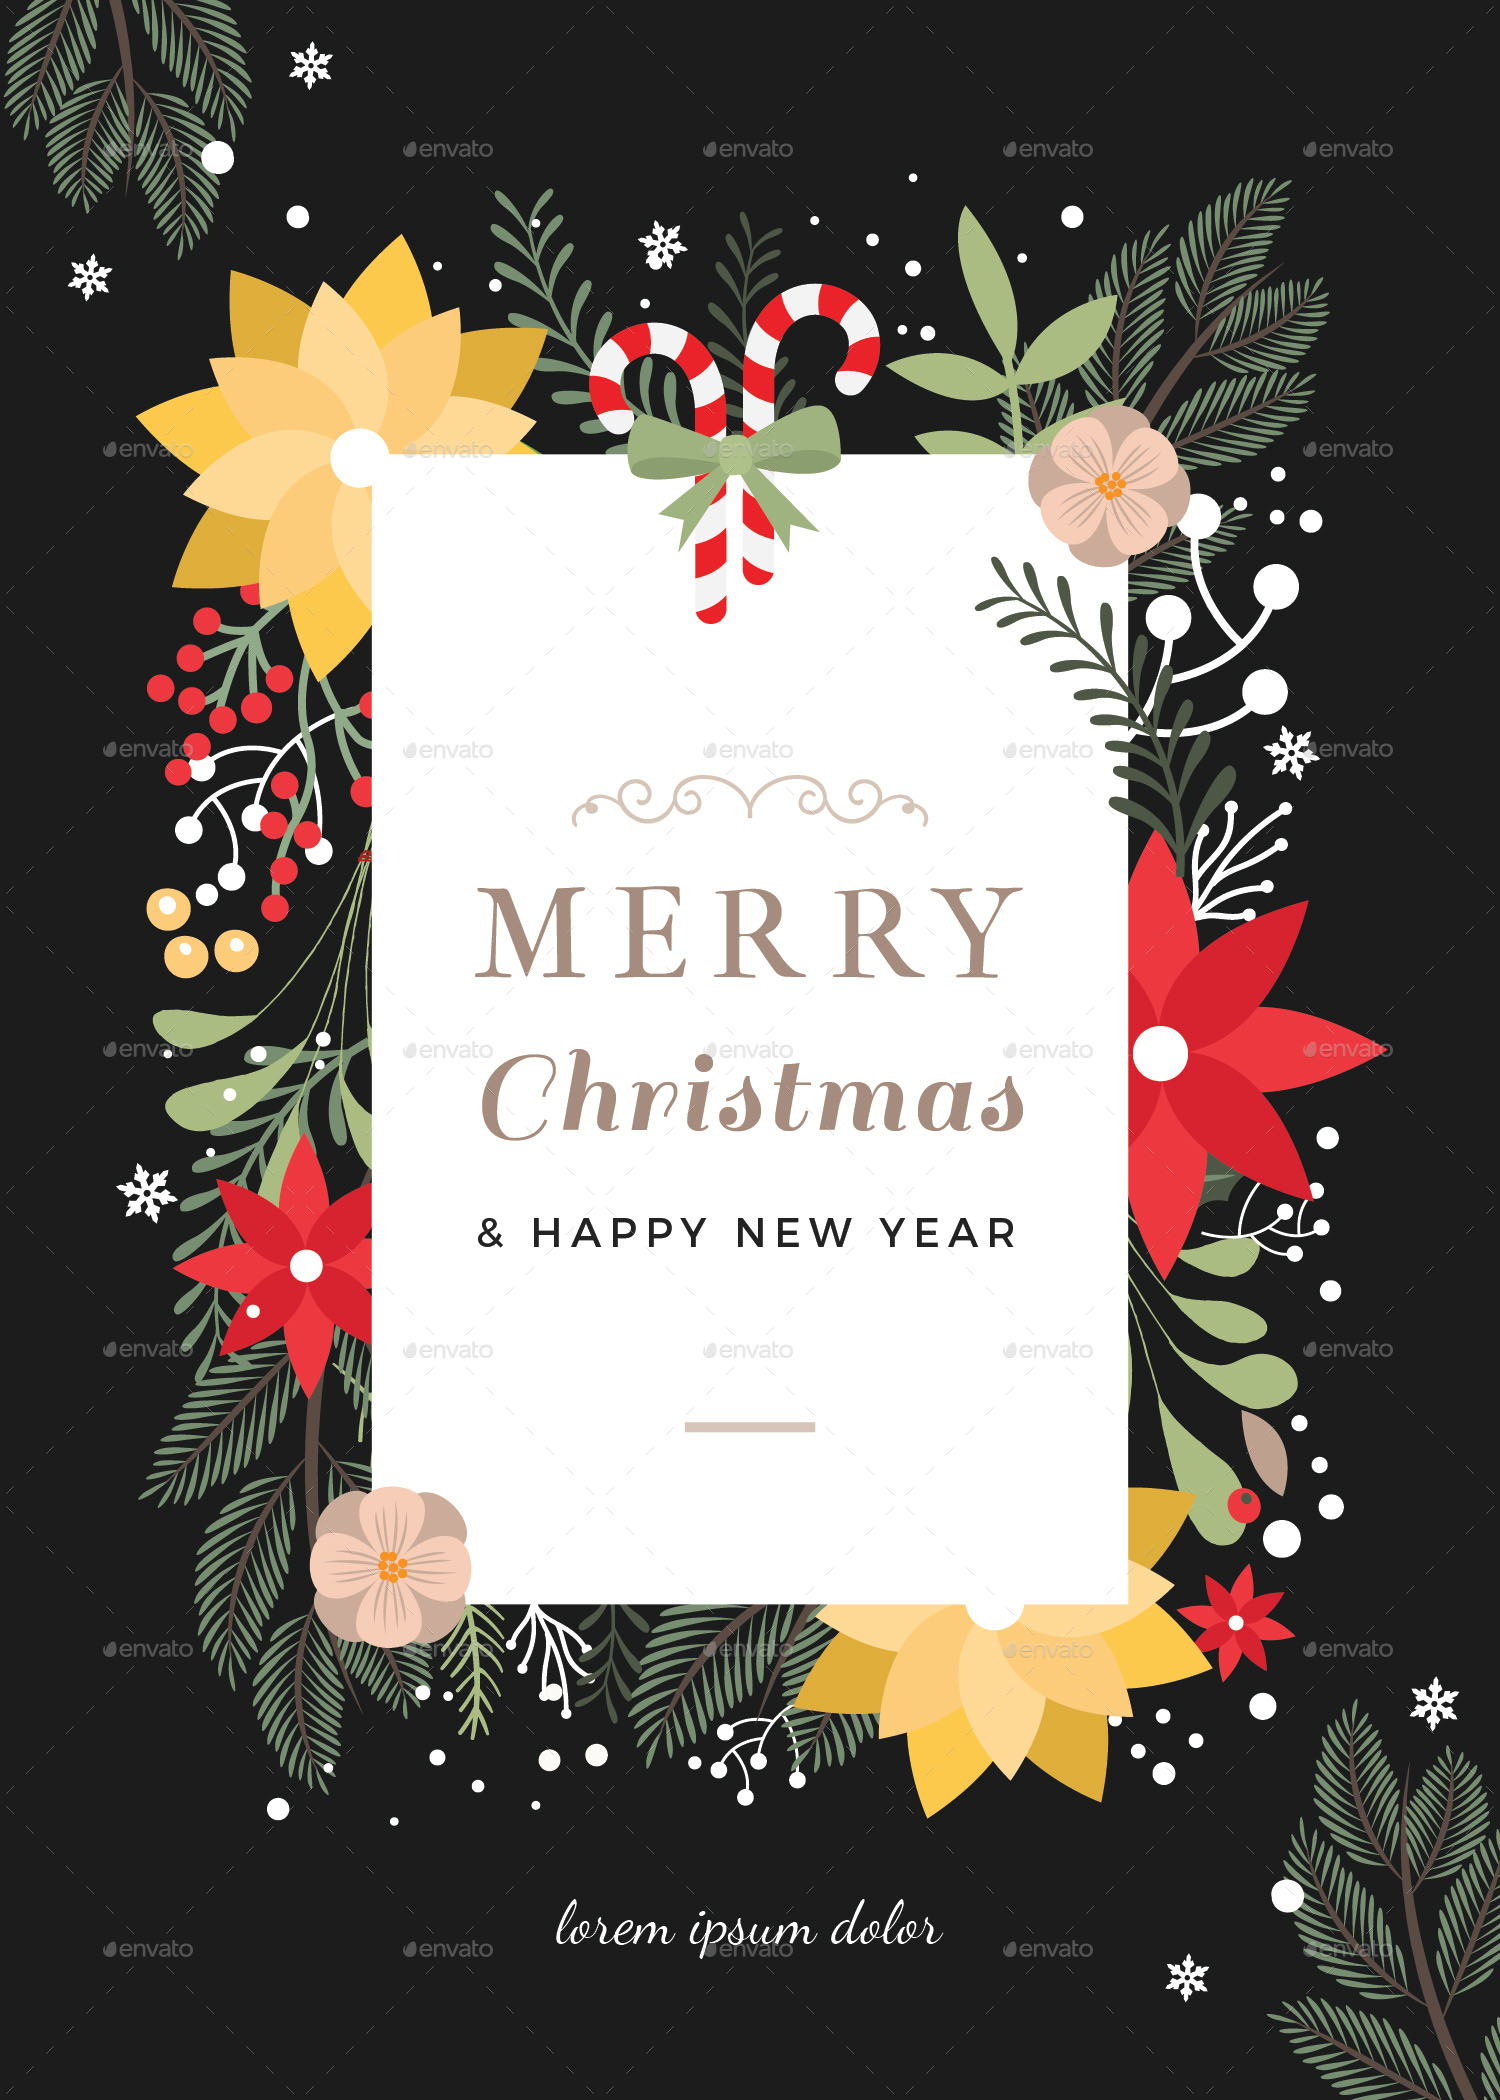 45+CHRISTMAS PREMIUM & FREE PSD HOLIDAY CARD TEMPLATES FOR ...